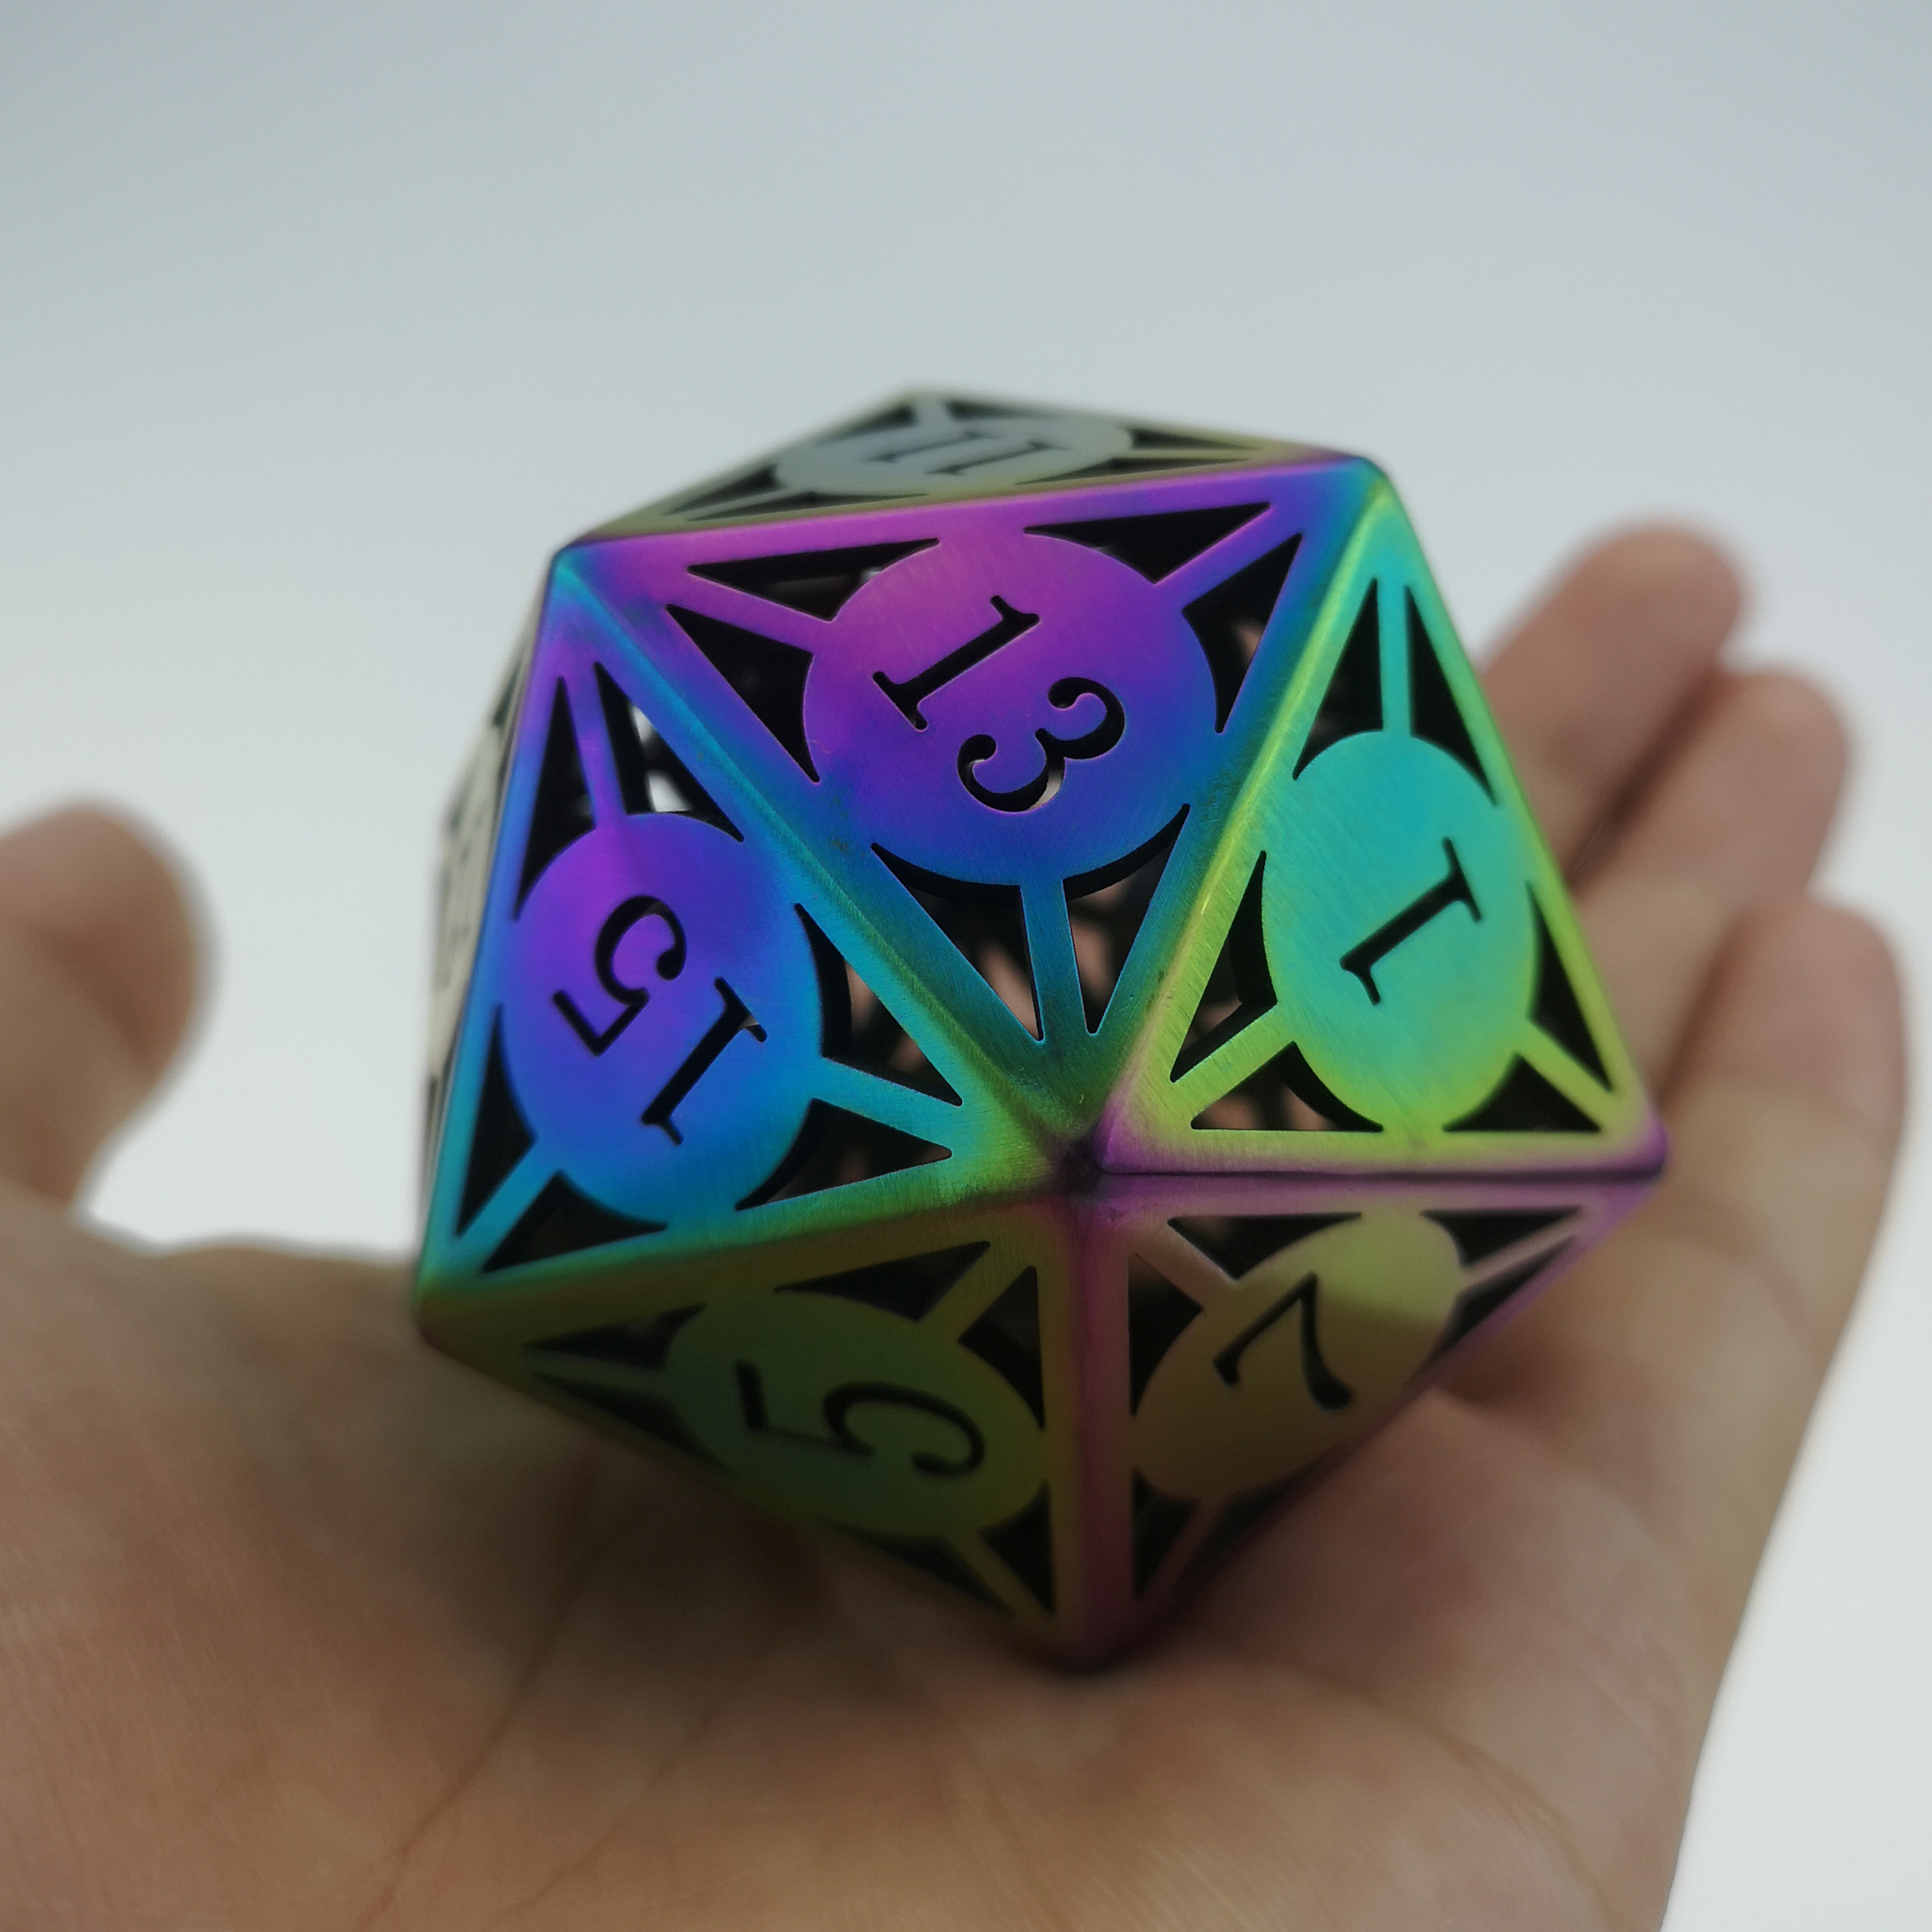 Rollooo Giant Hollow Metal Dice D20 Flame treated Finishing for Roleplaying Games Collection or Gift